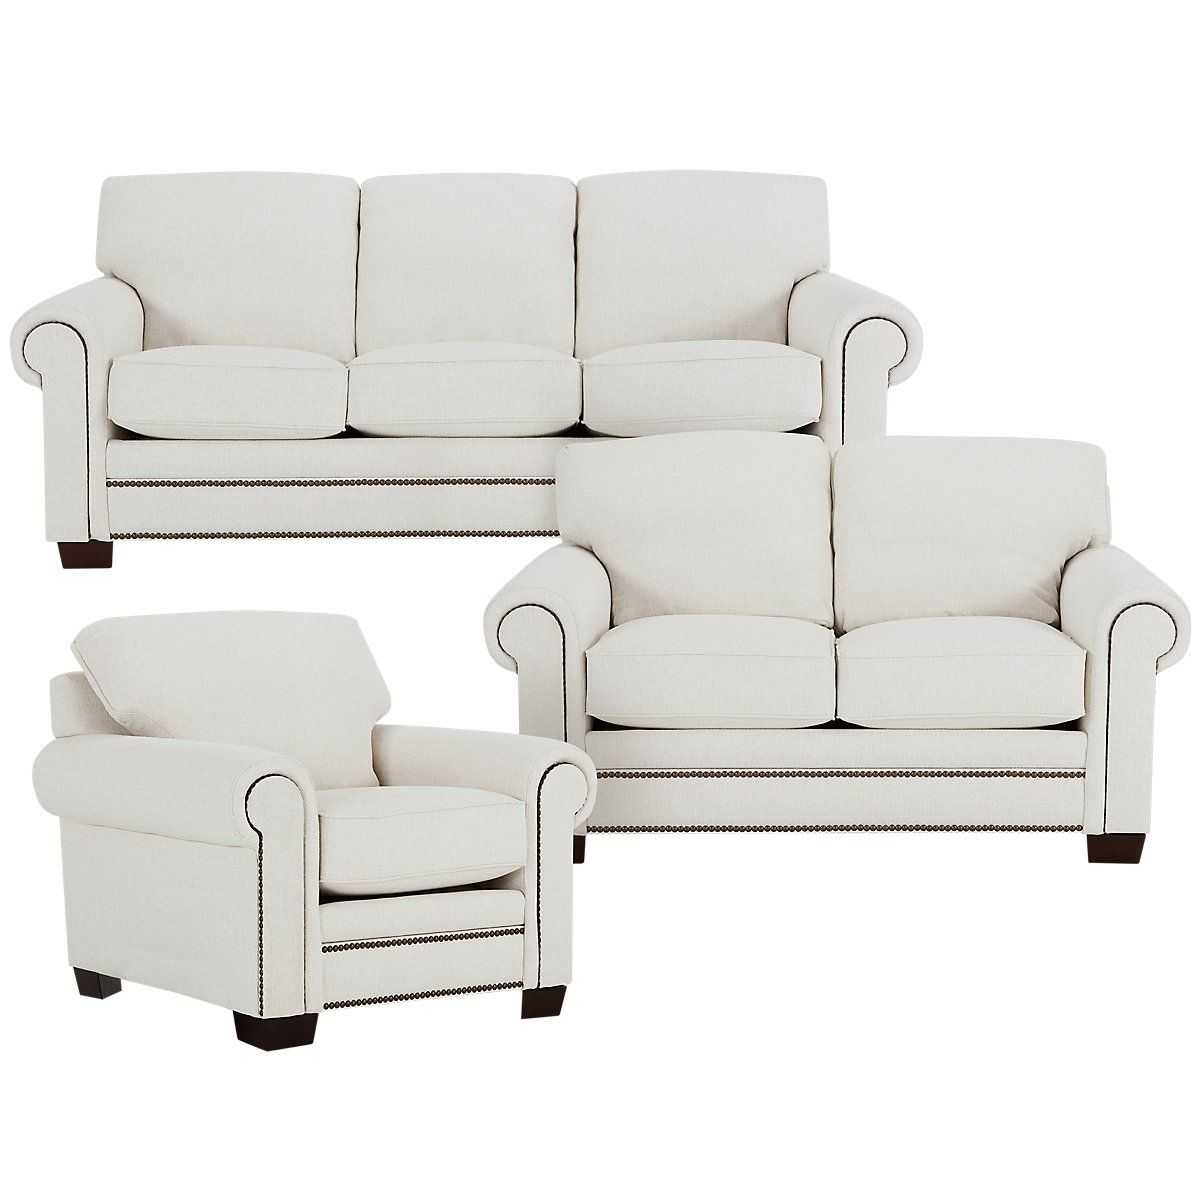 City Furniture Foster White Fabric Sofa White Fabric Sofa Furniture City Furniture Design